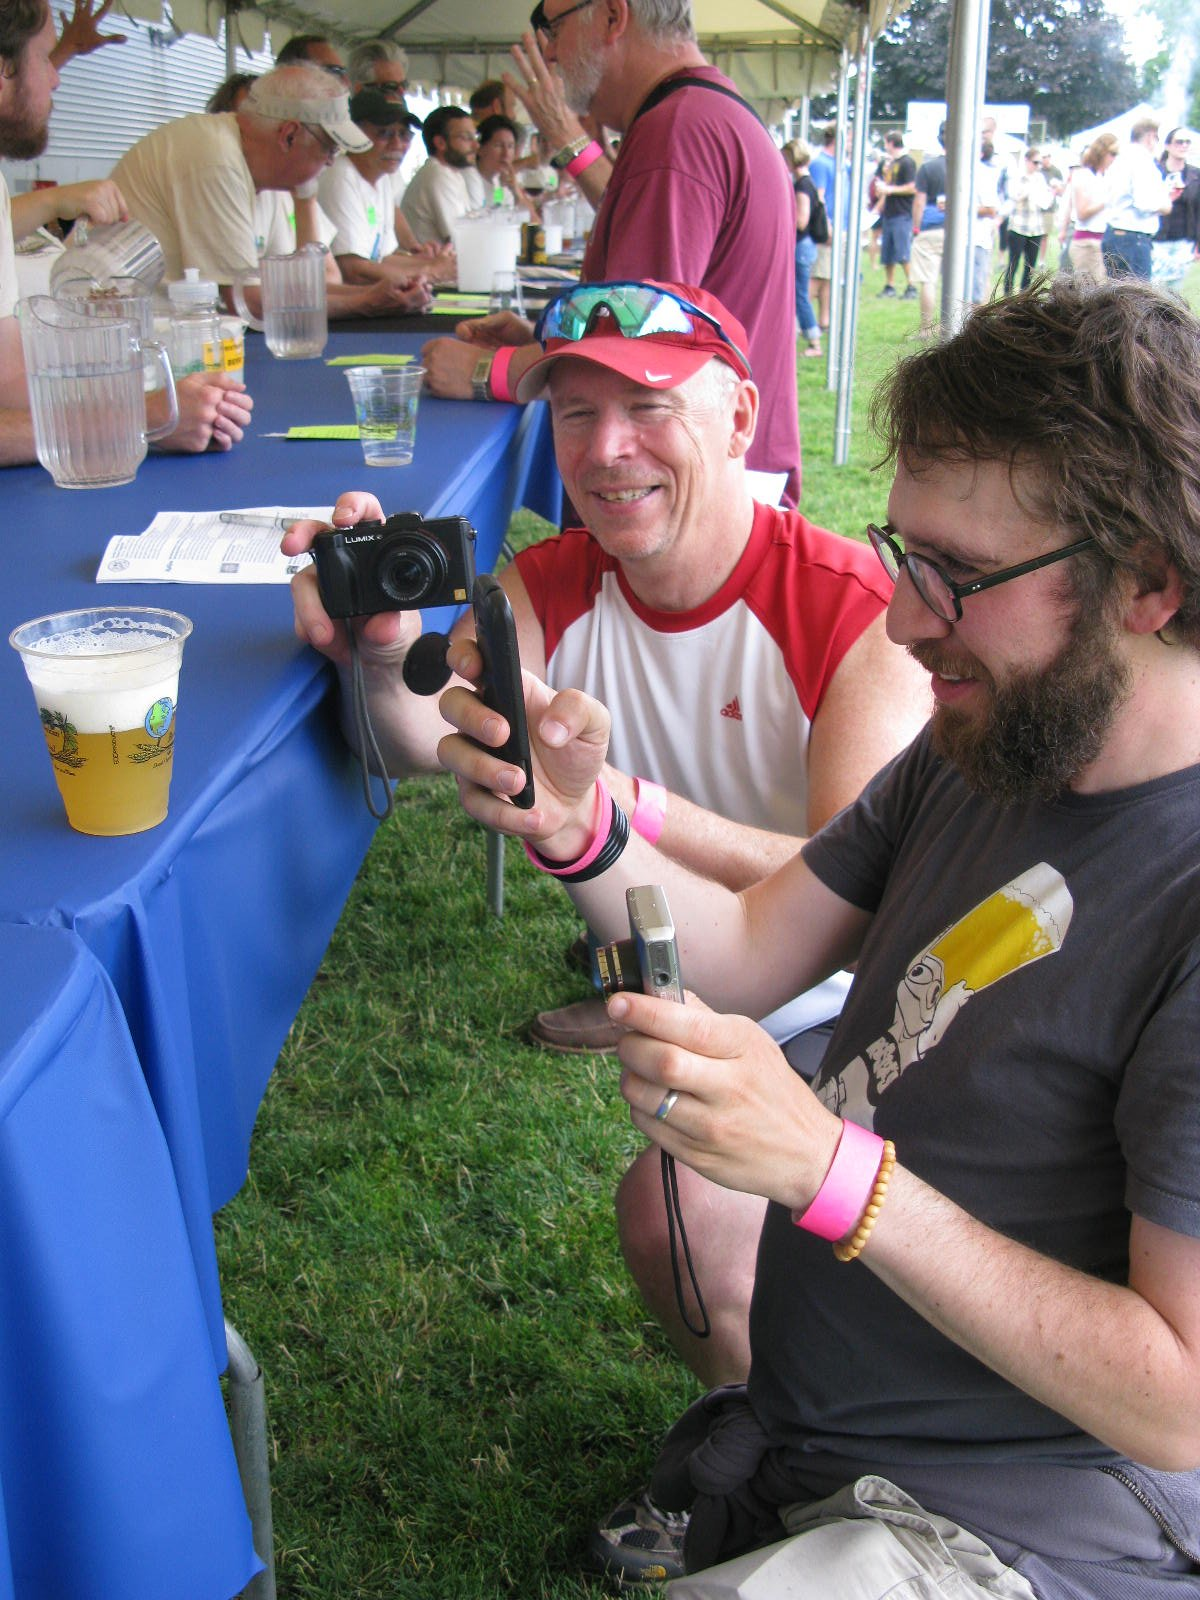 "Beer bloggers Pete Dunlop and Brewpublican Angelo deIeso take the all important first step in modern beer-drinking: photograph you beer and post to snapchat, instagram or whatever via satellite. Next they'll presumably observe the late Fred Eckhardt's injunction to ""listen to your beer"" and may eventually get around to actually drinking the beer...maybe. (FoystonFoto)"